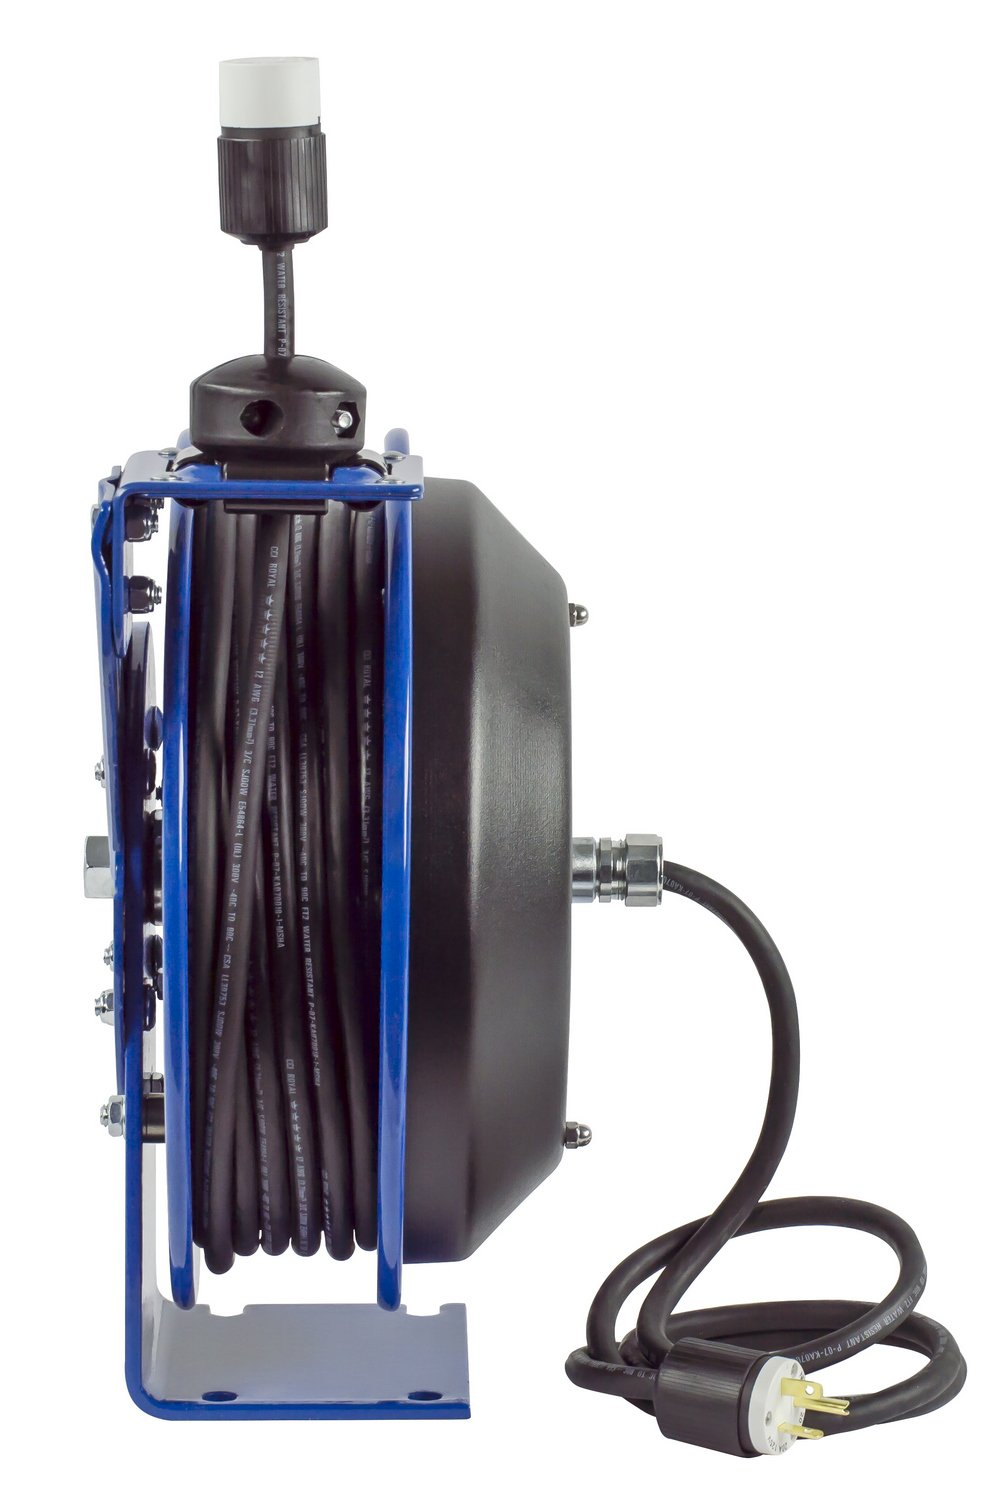 20 Amp 115 Volts 50 Length Coxreels EZ-PC13-5012-F Safety Series Spring Rewind SJO Power Cord Reel